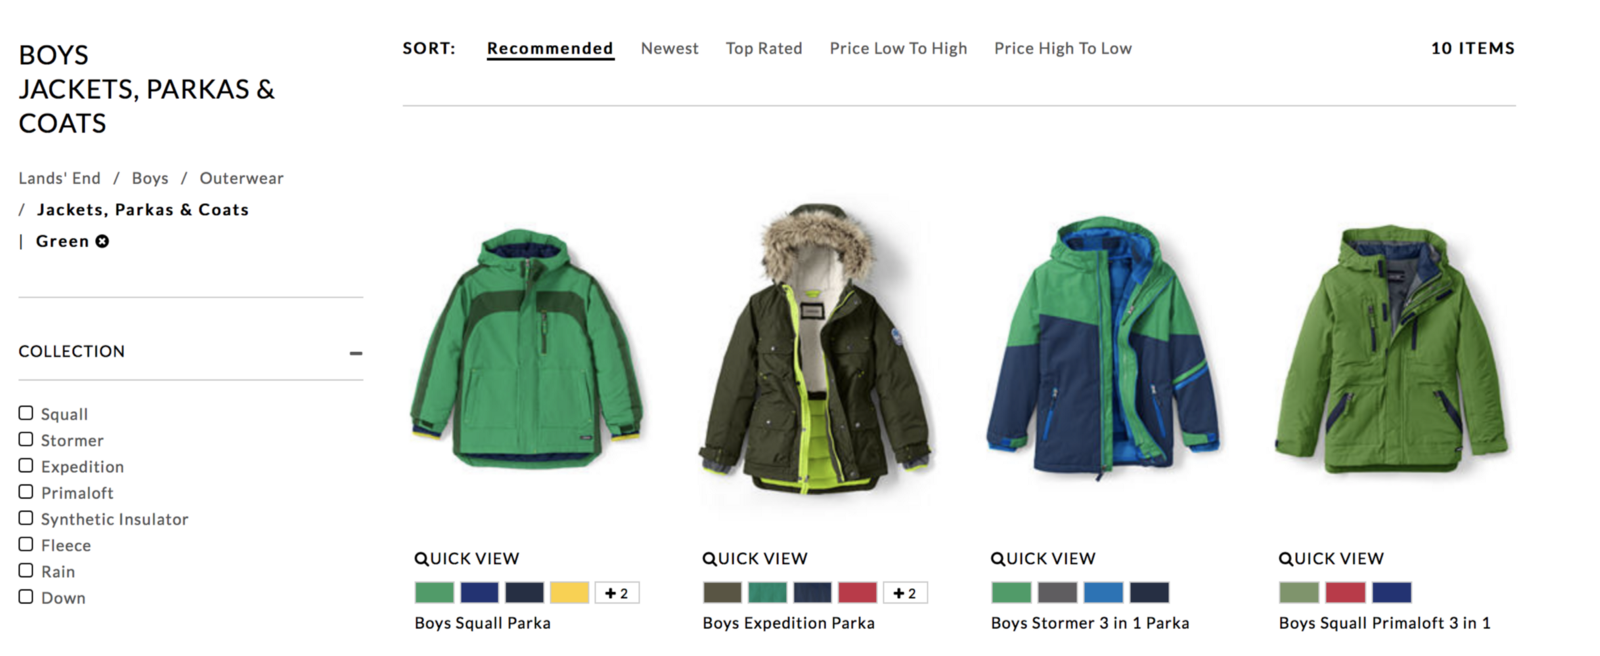 ad4247dcd Screen shot at Lands' End for green boys' jackets.